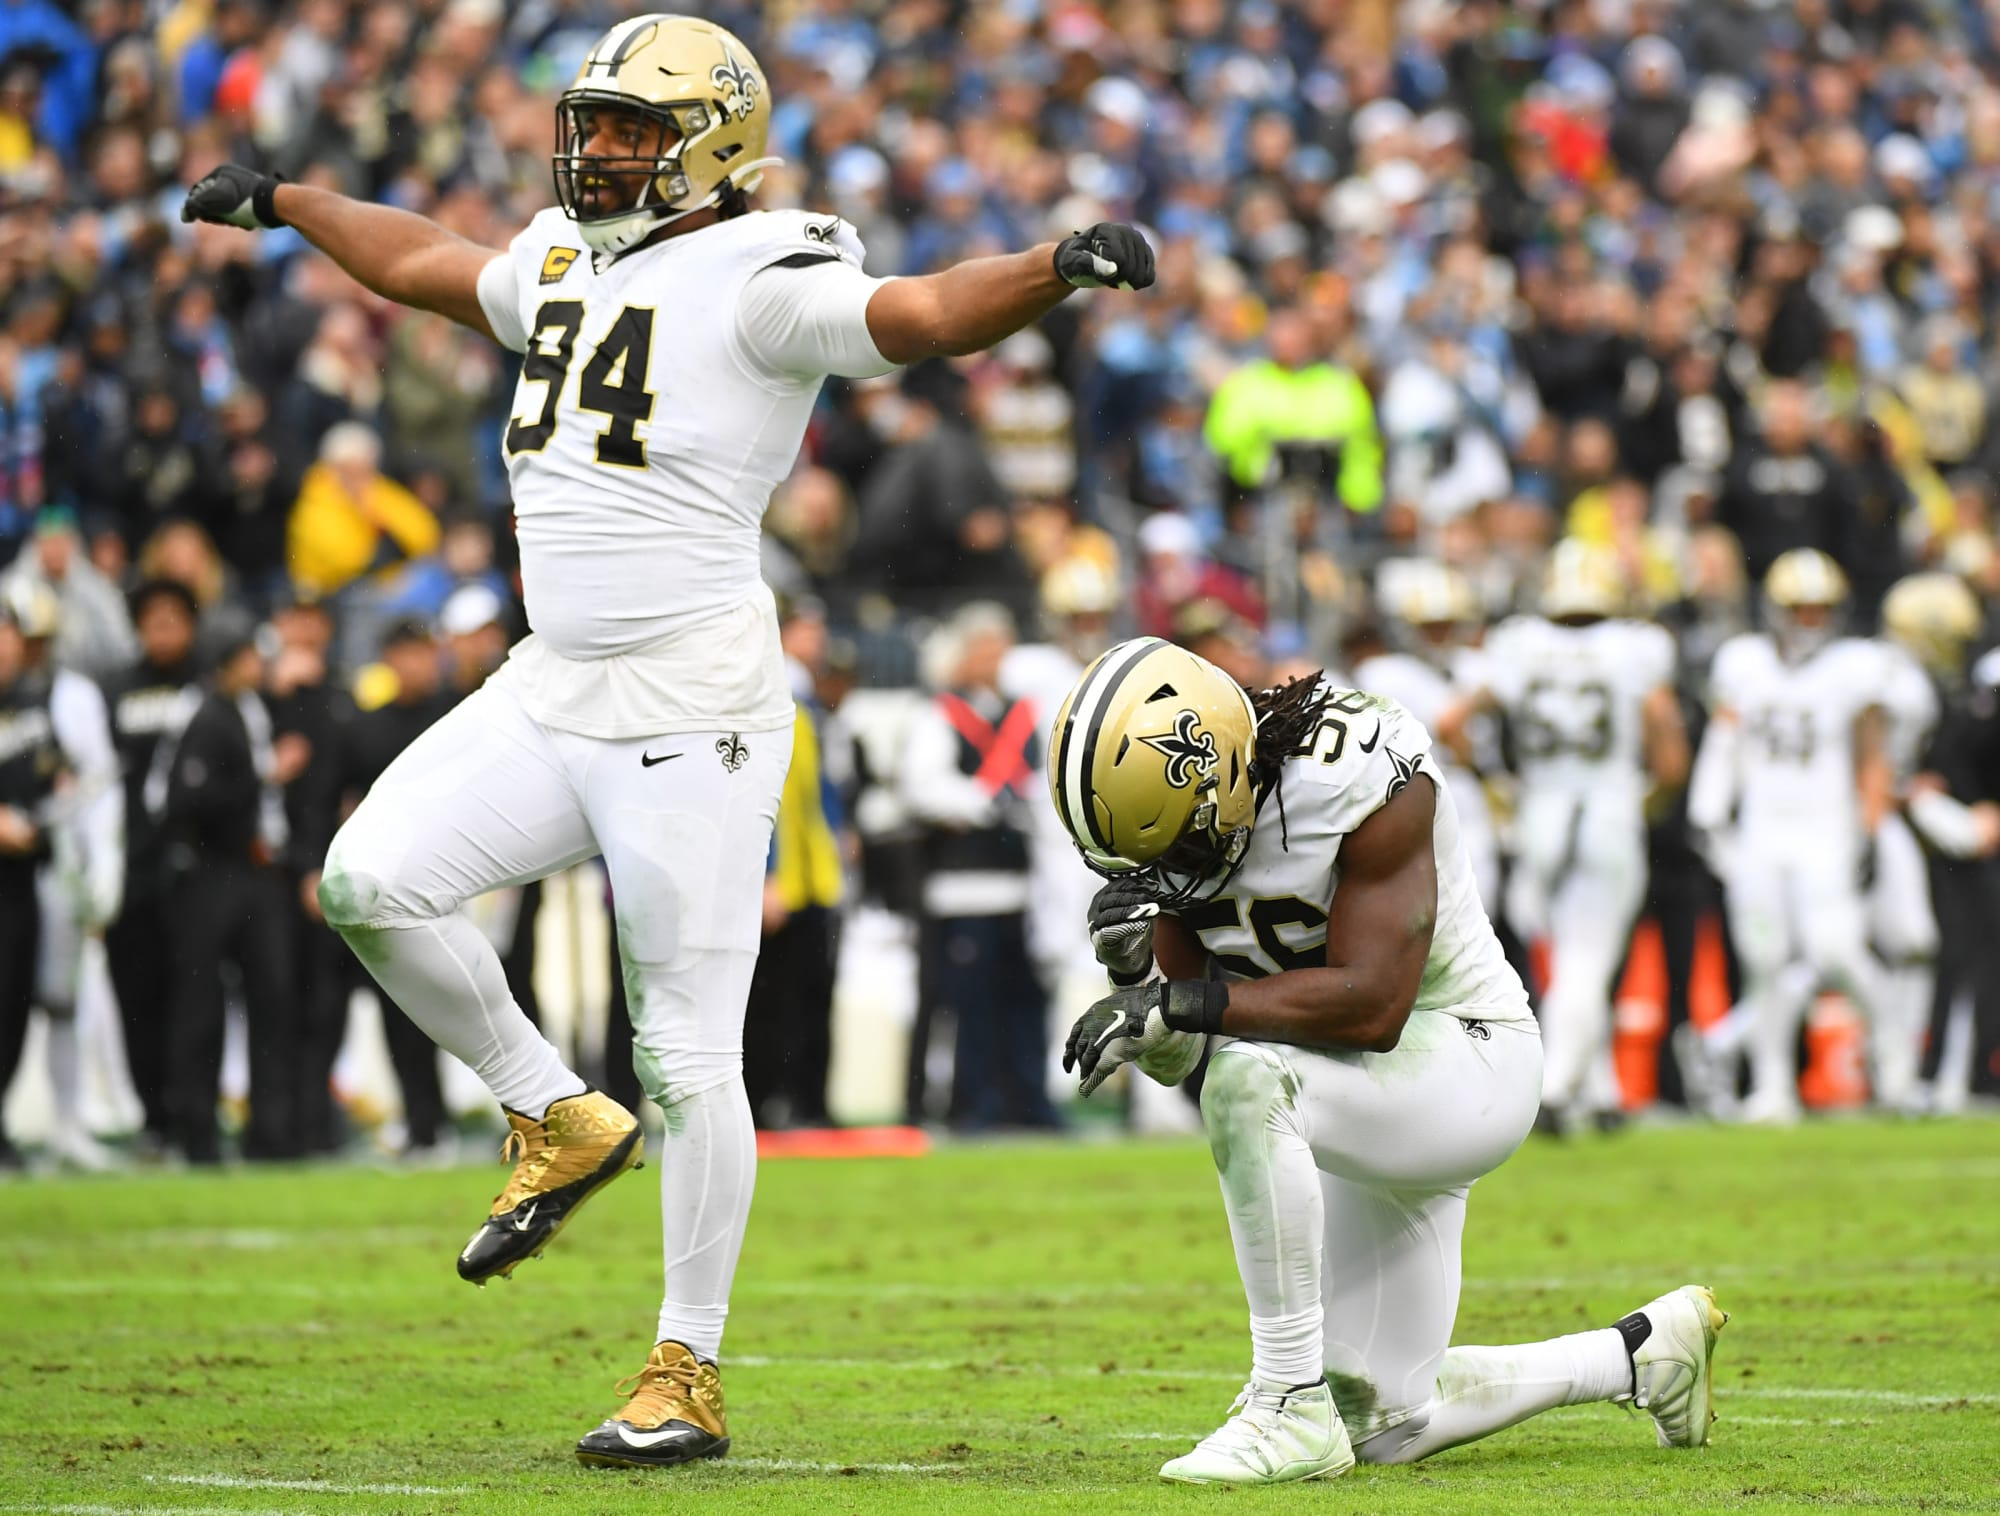 Saints: New Orleans clawing their way out of cap hell with savvy moves